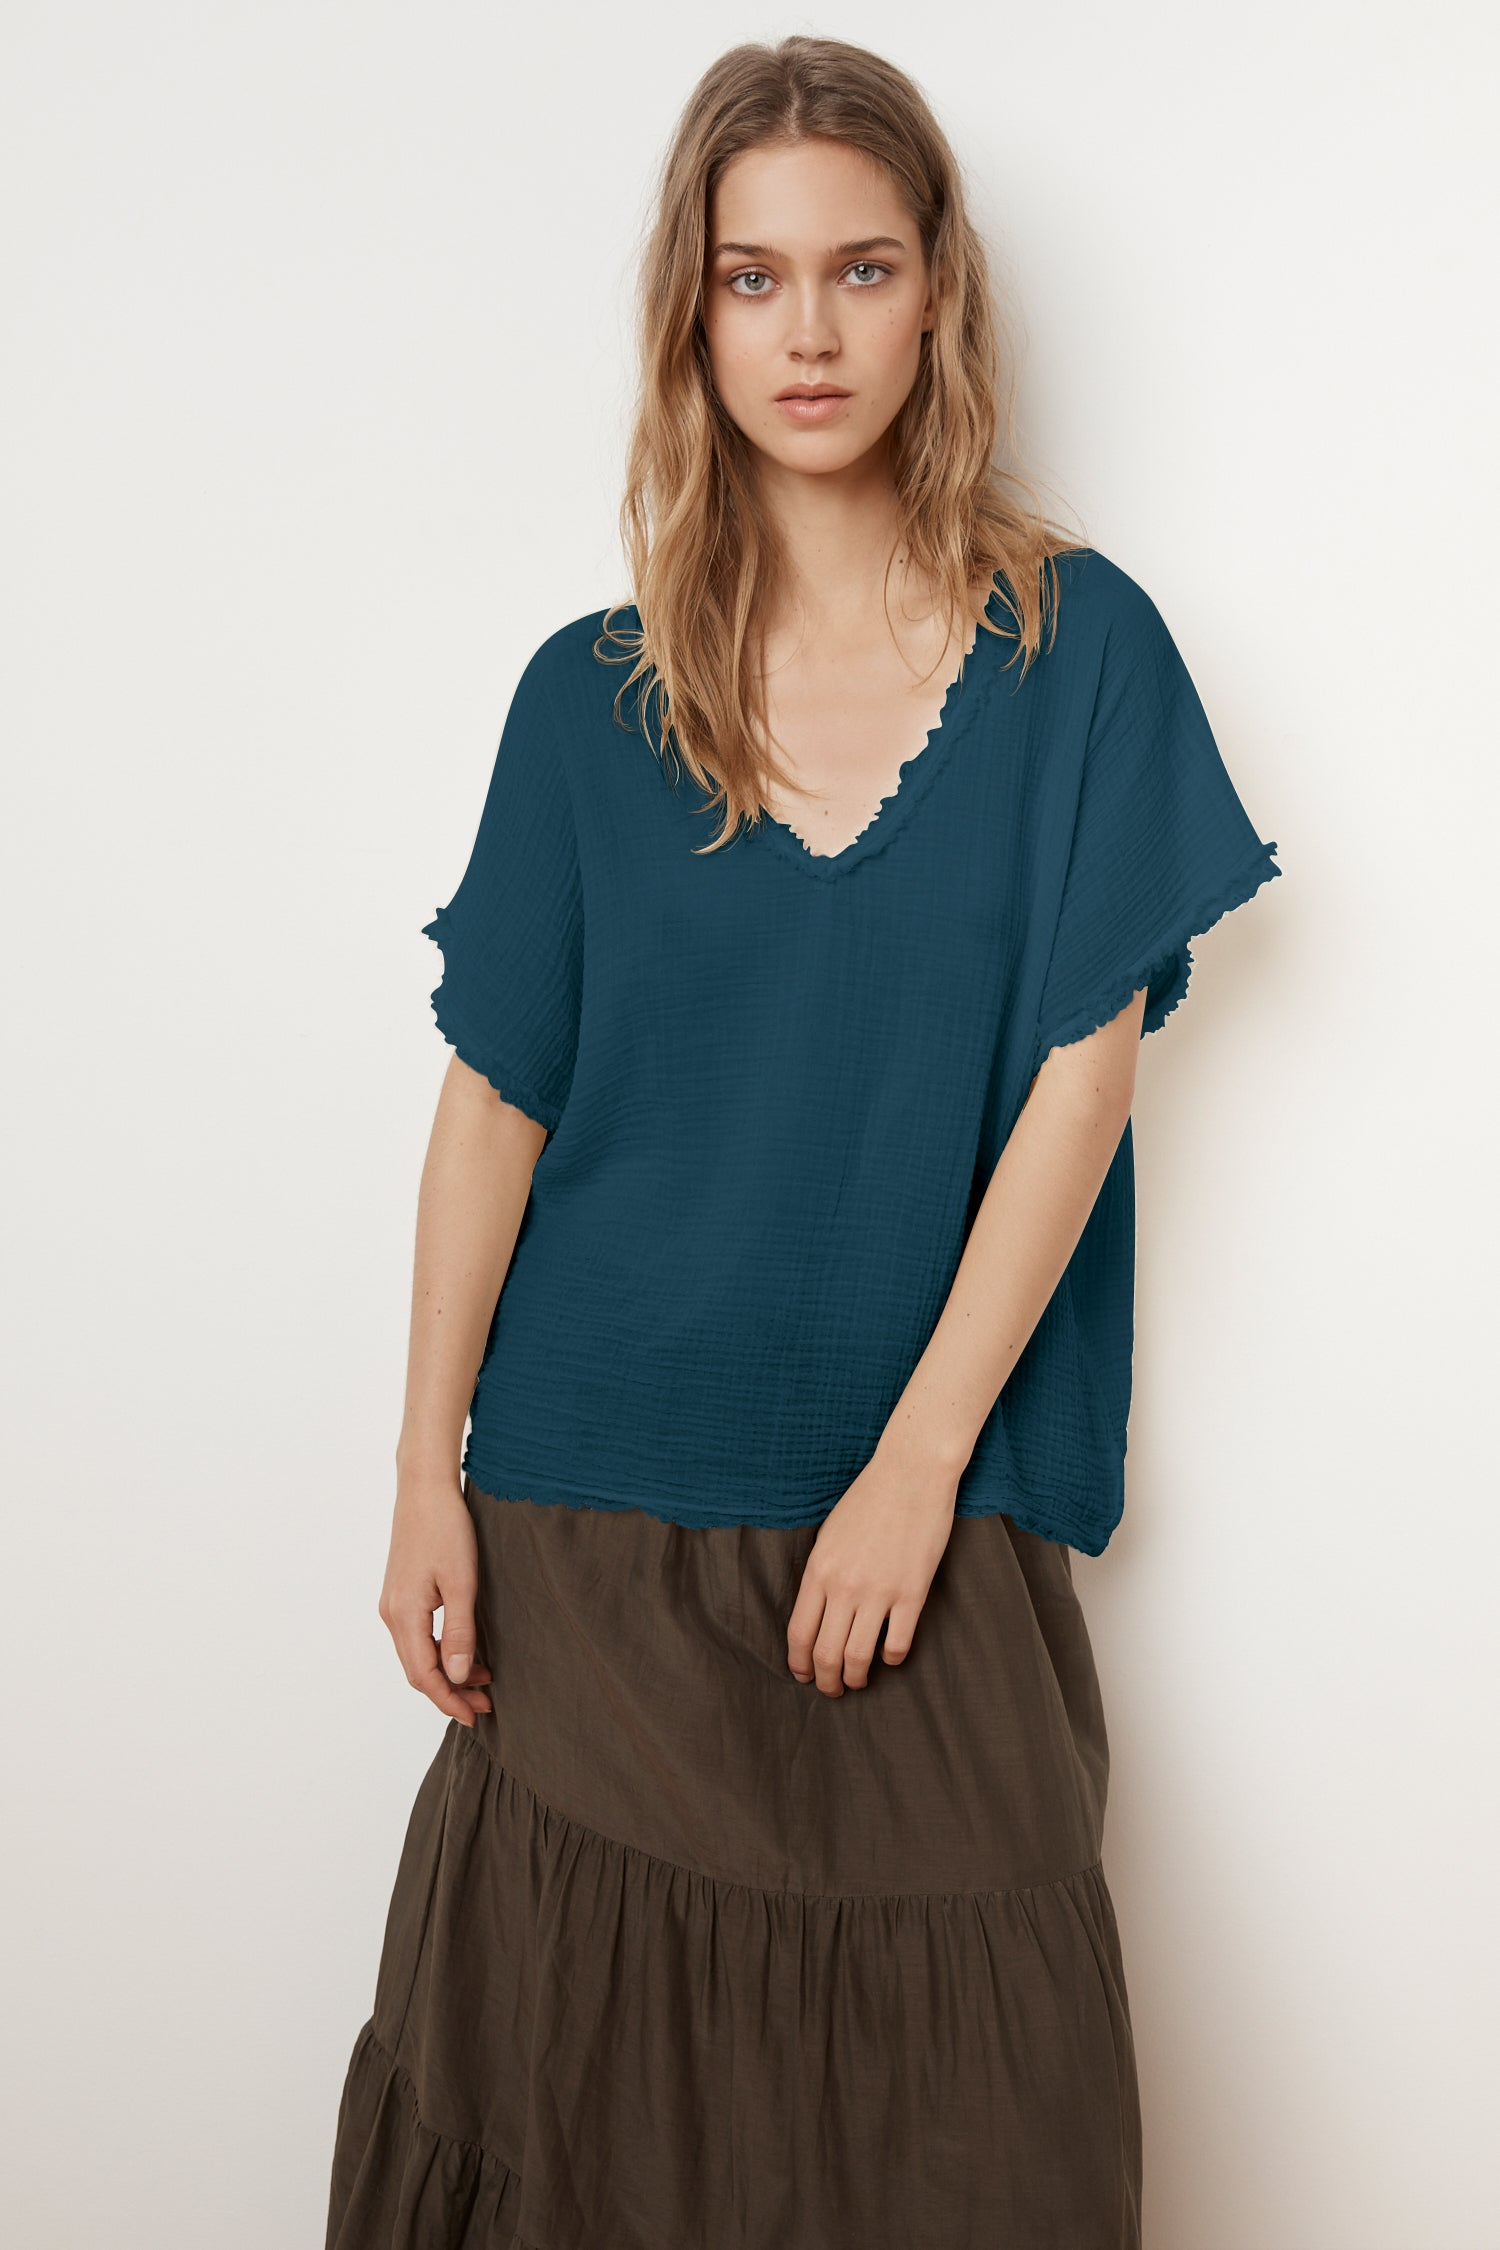 DENISA SOFT COTTON GAUZE V-NECK TOP IN AQUARIA